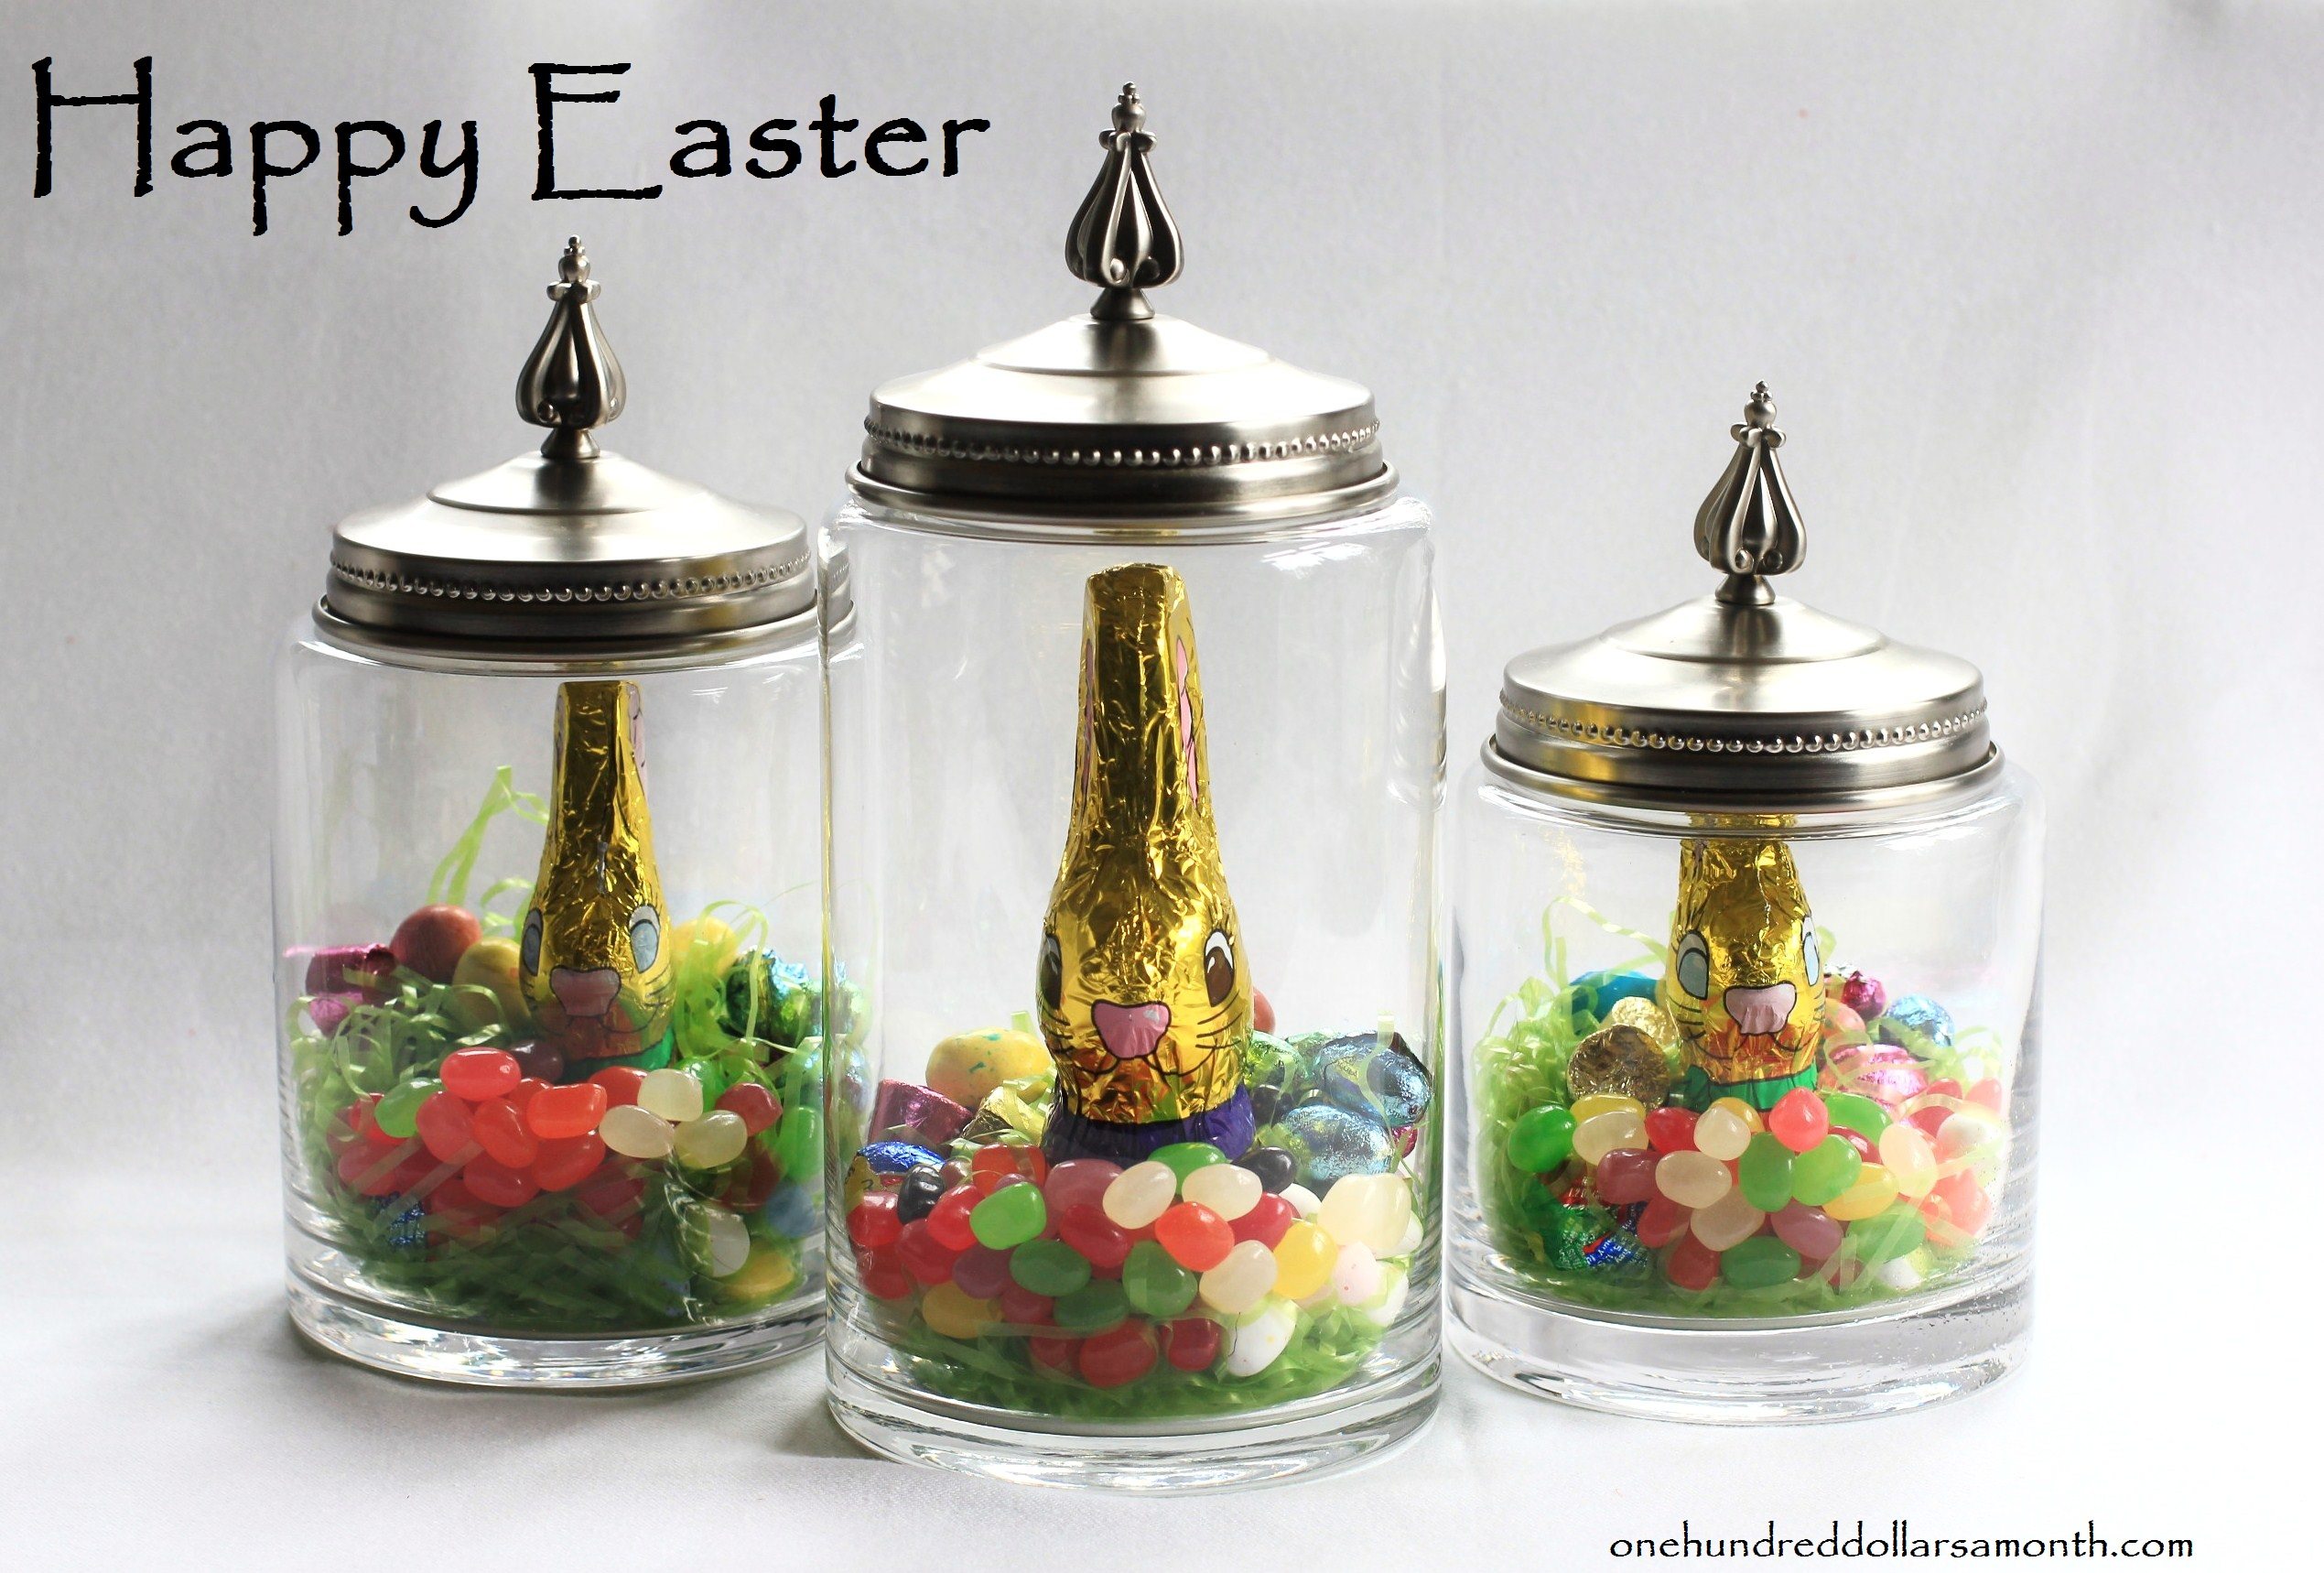 Last Minute Easter Idea: Treats in Glass Jars